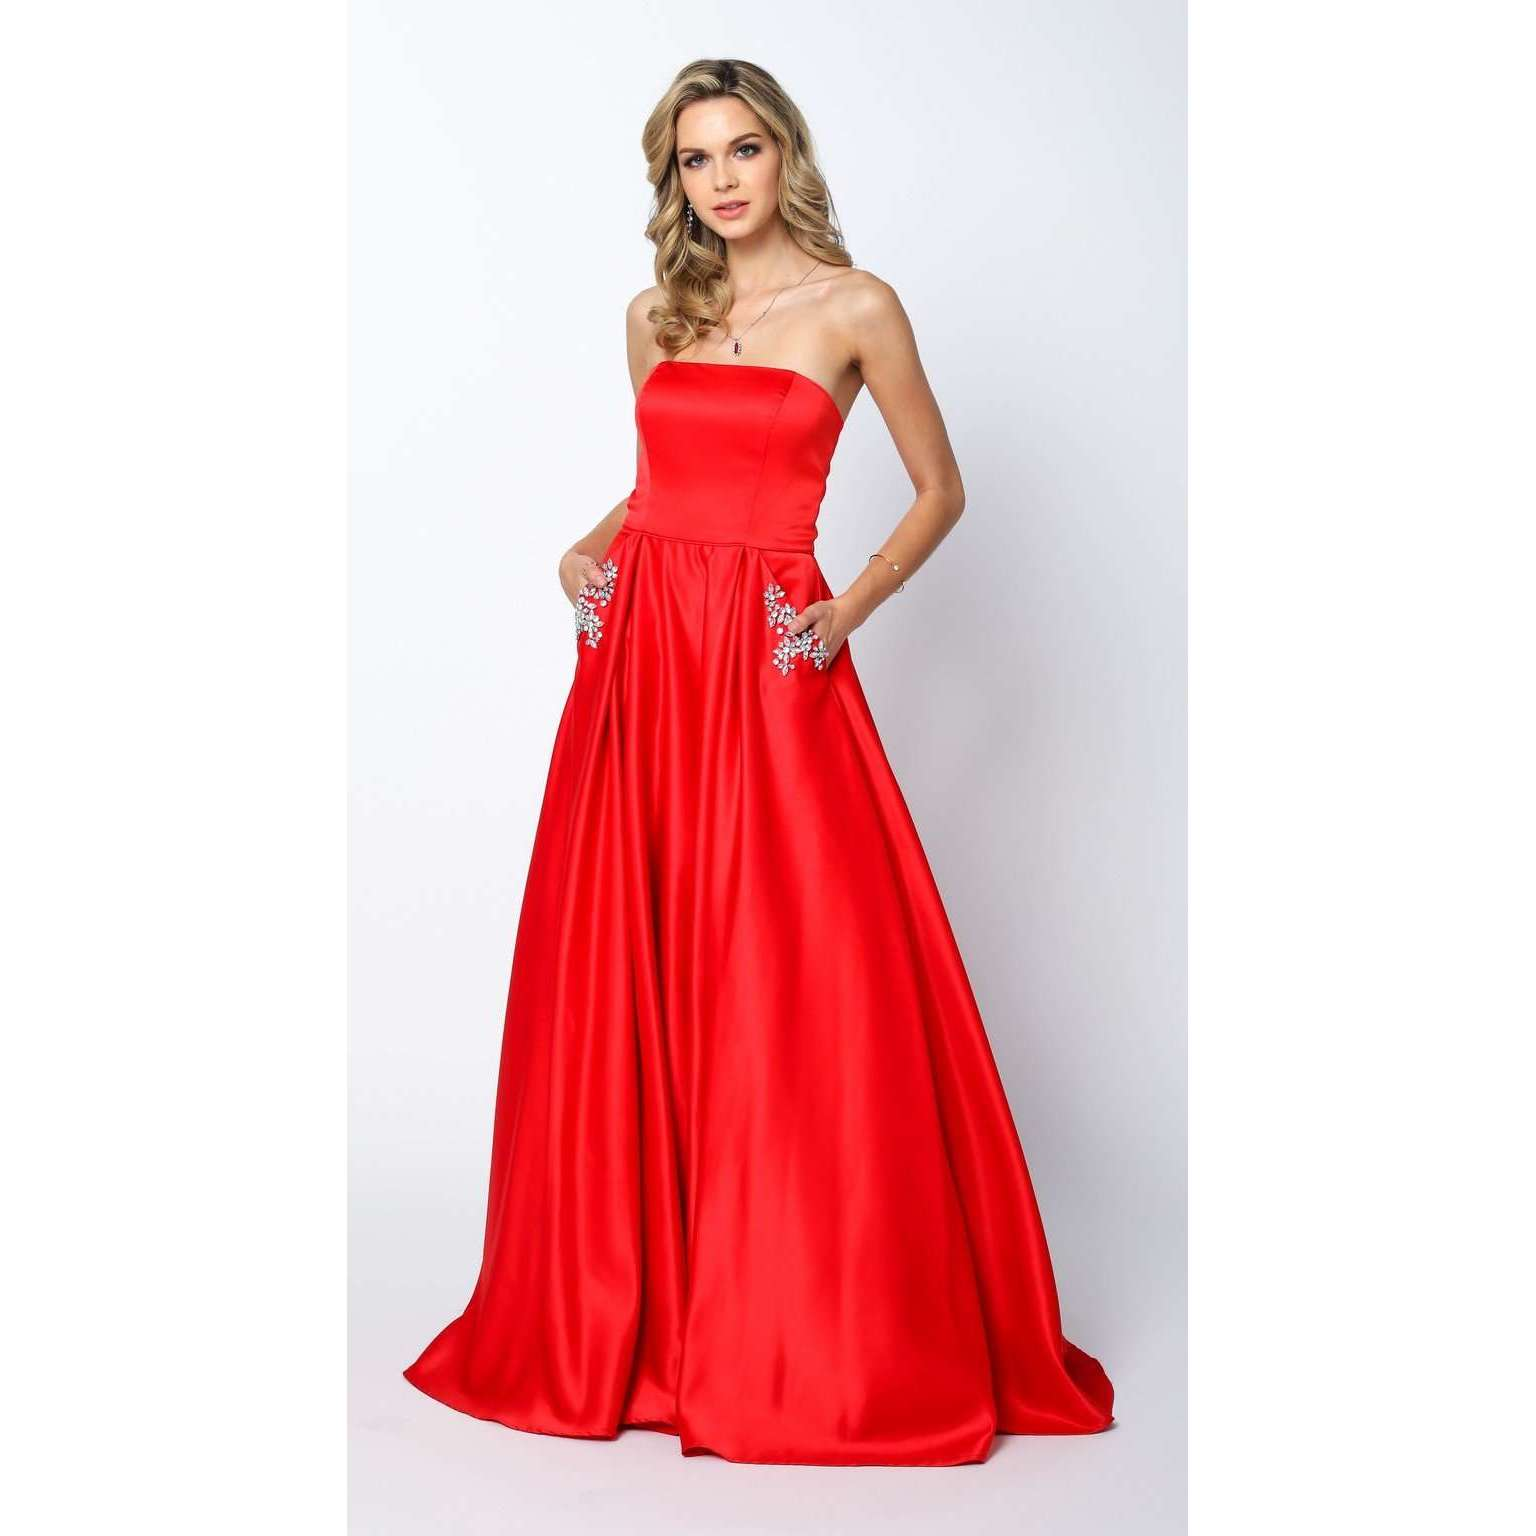 Strapless Ball Gown Style Prom Dress 372 - Julietdresses